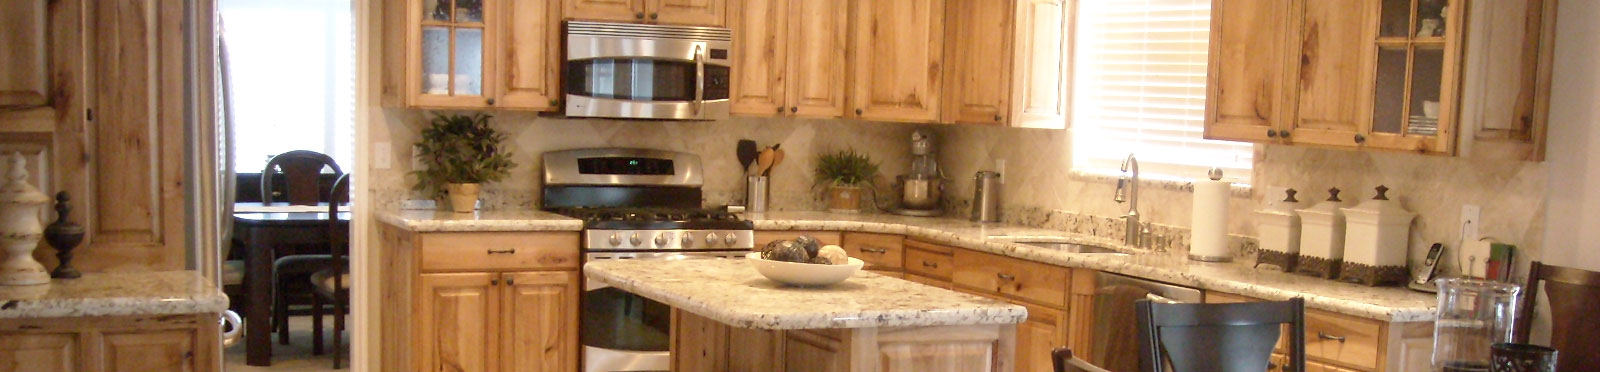 Kitchen Remodeling And Bathroom Remodeling For St Louis Missouri